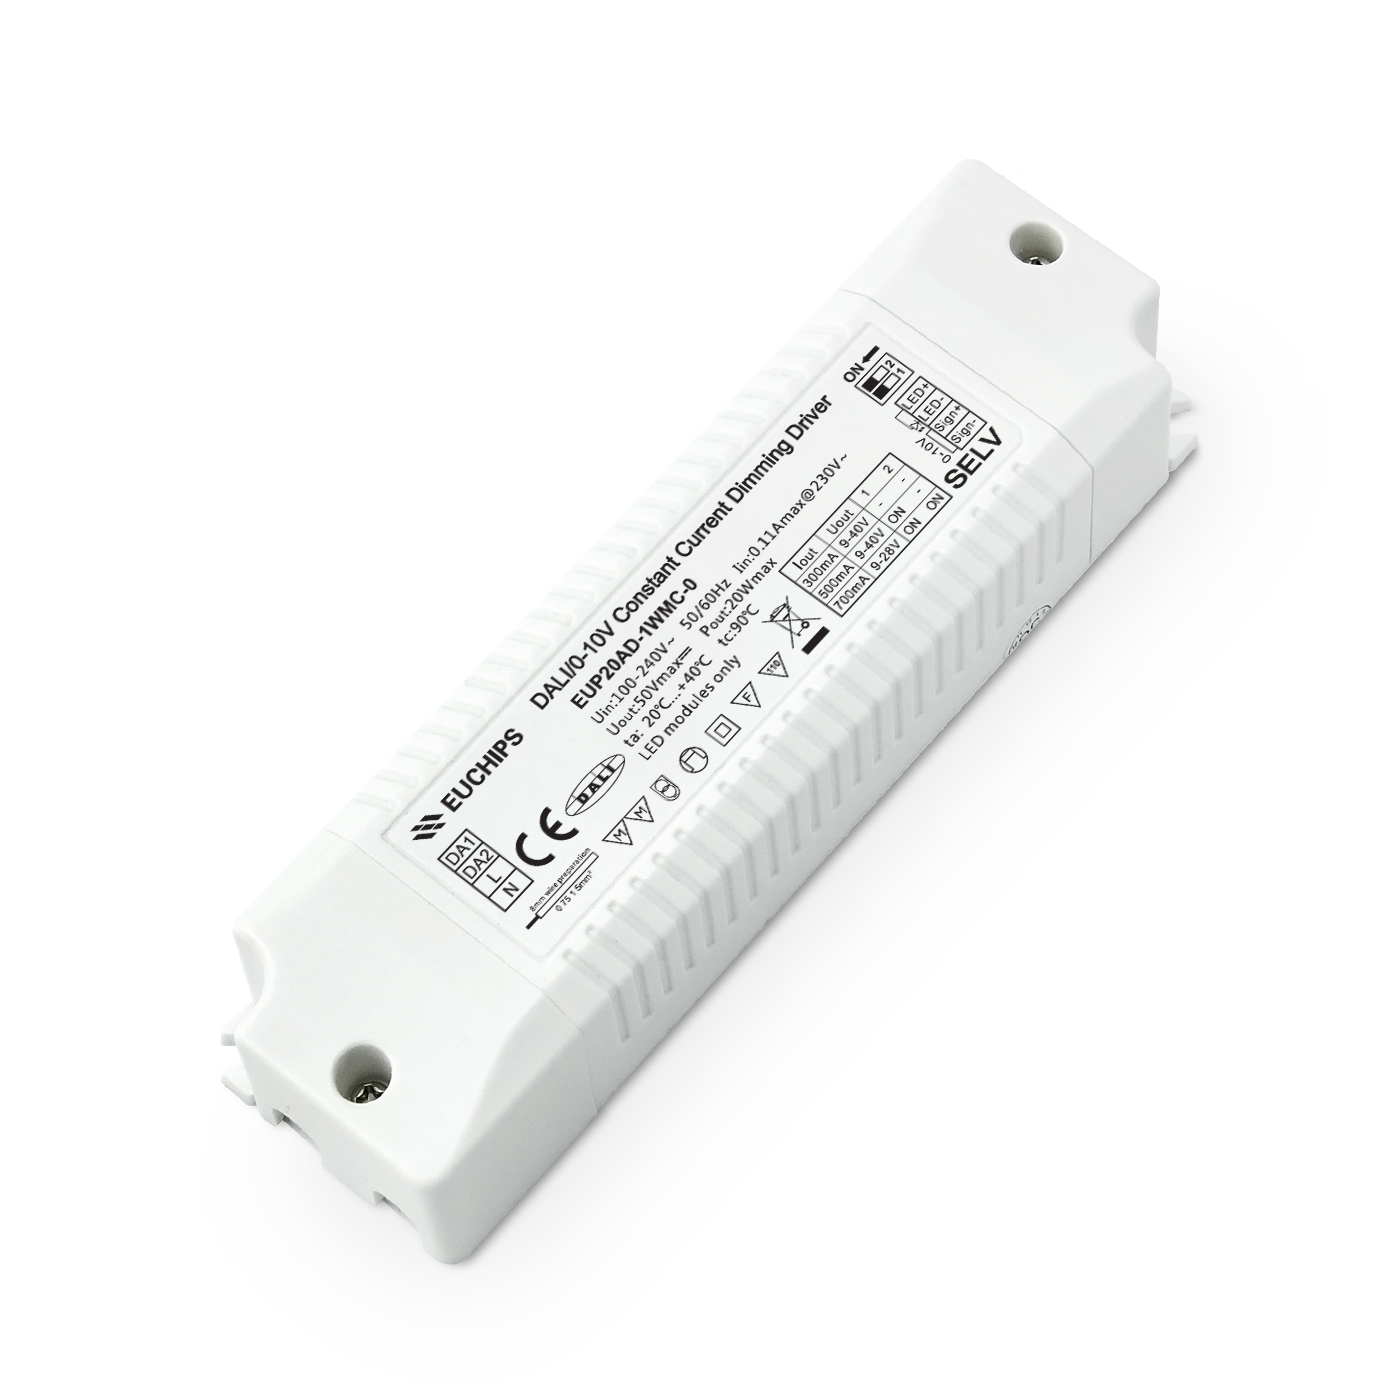 Hot New Products Automatic Night Light -